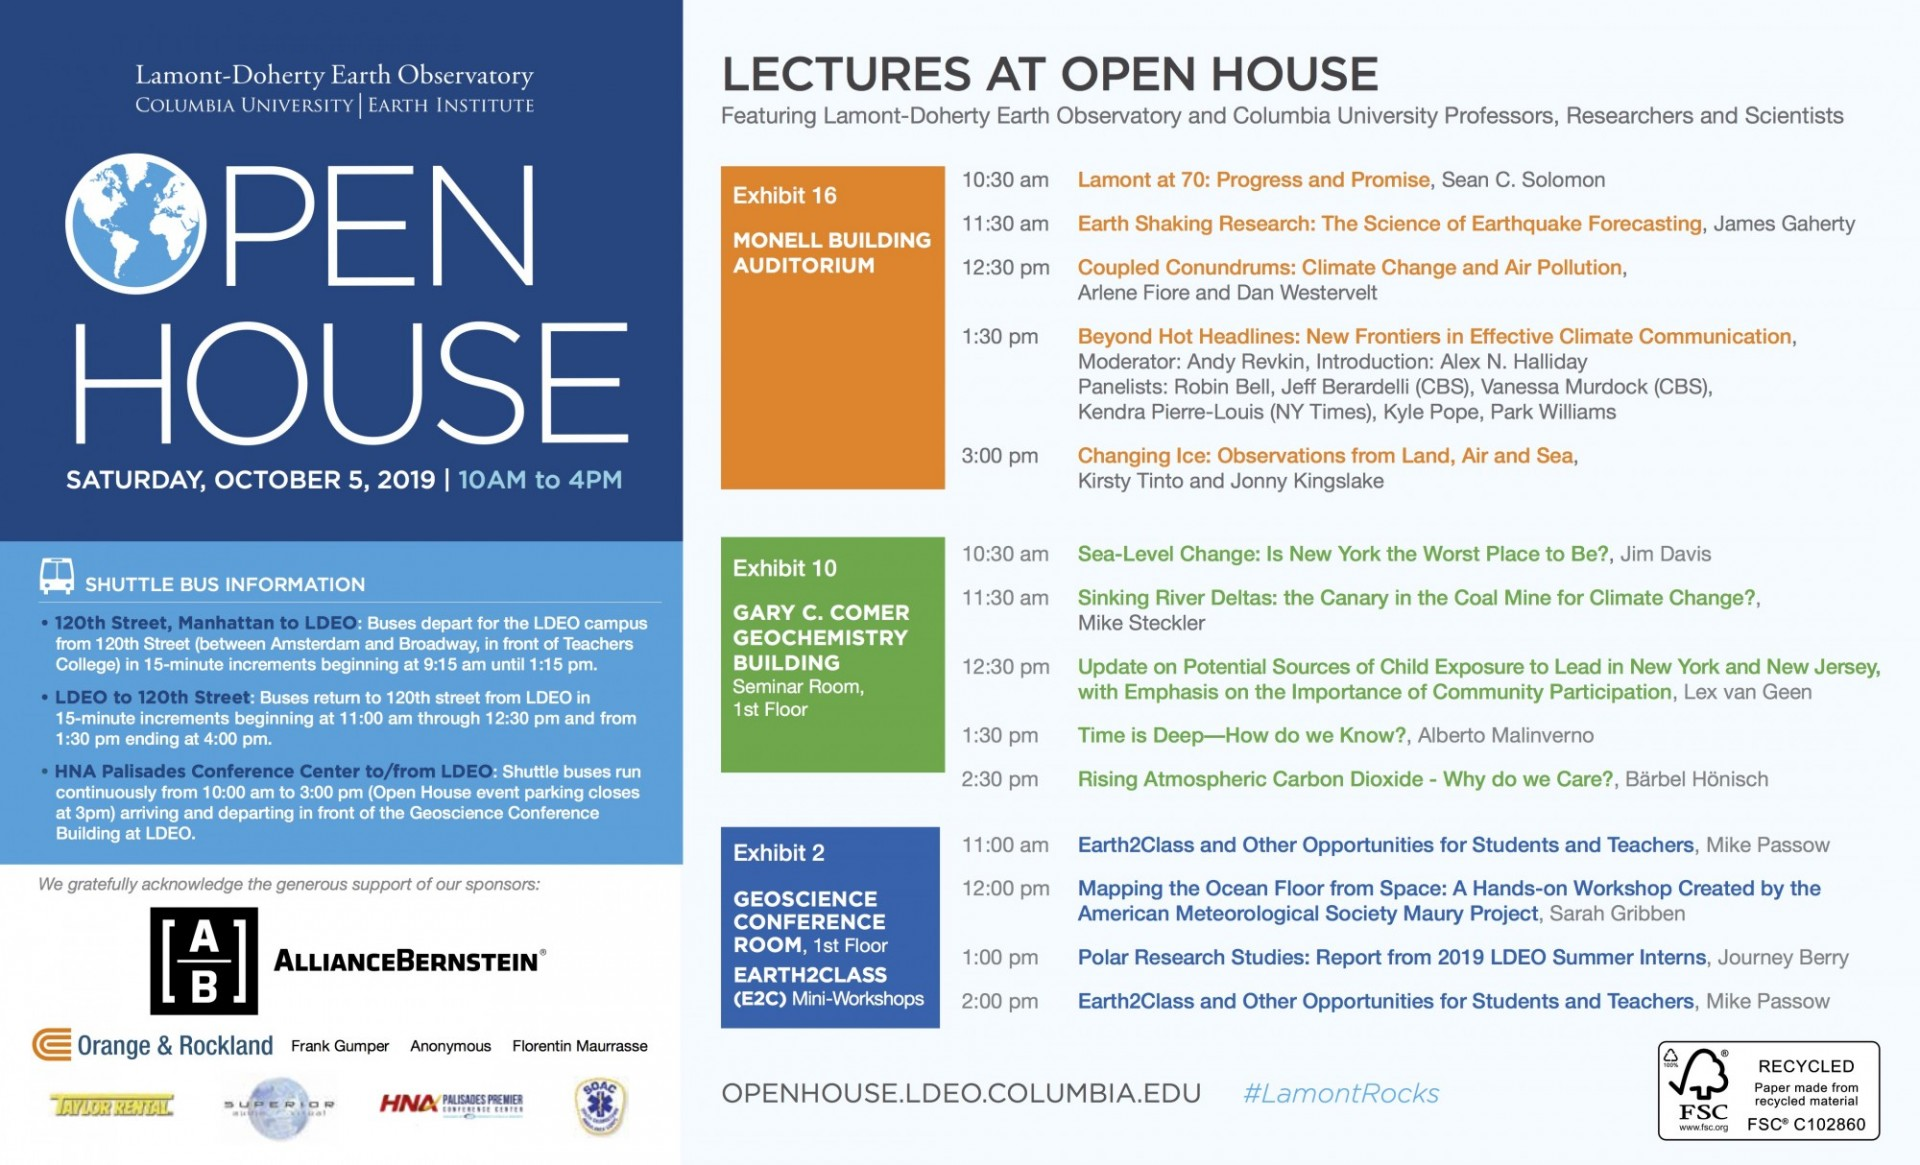 Open House 2019 Lecture Schedule